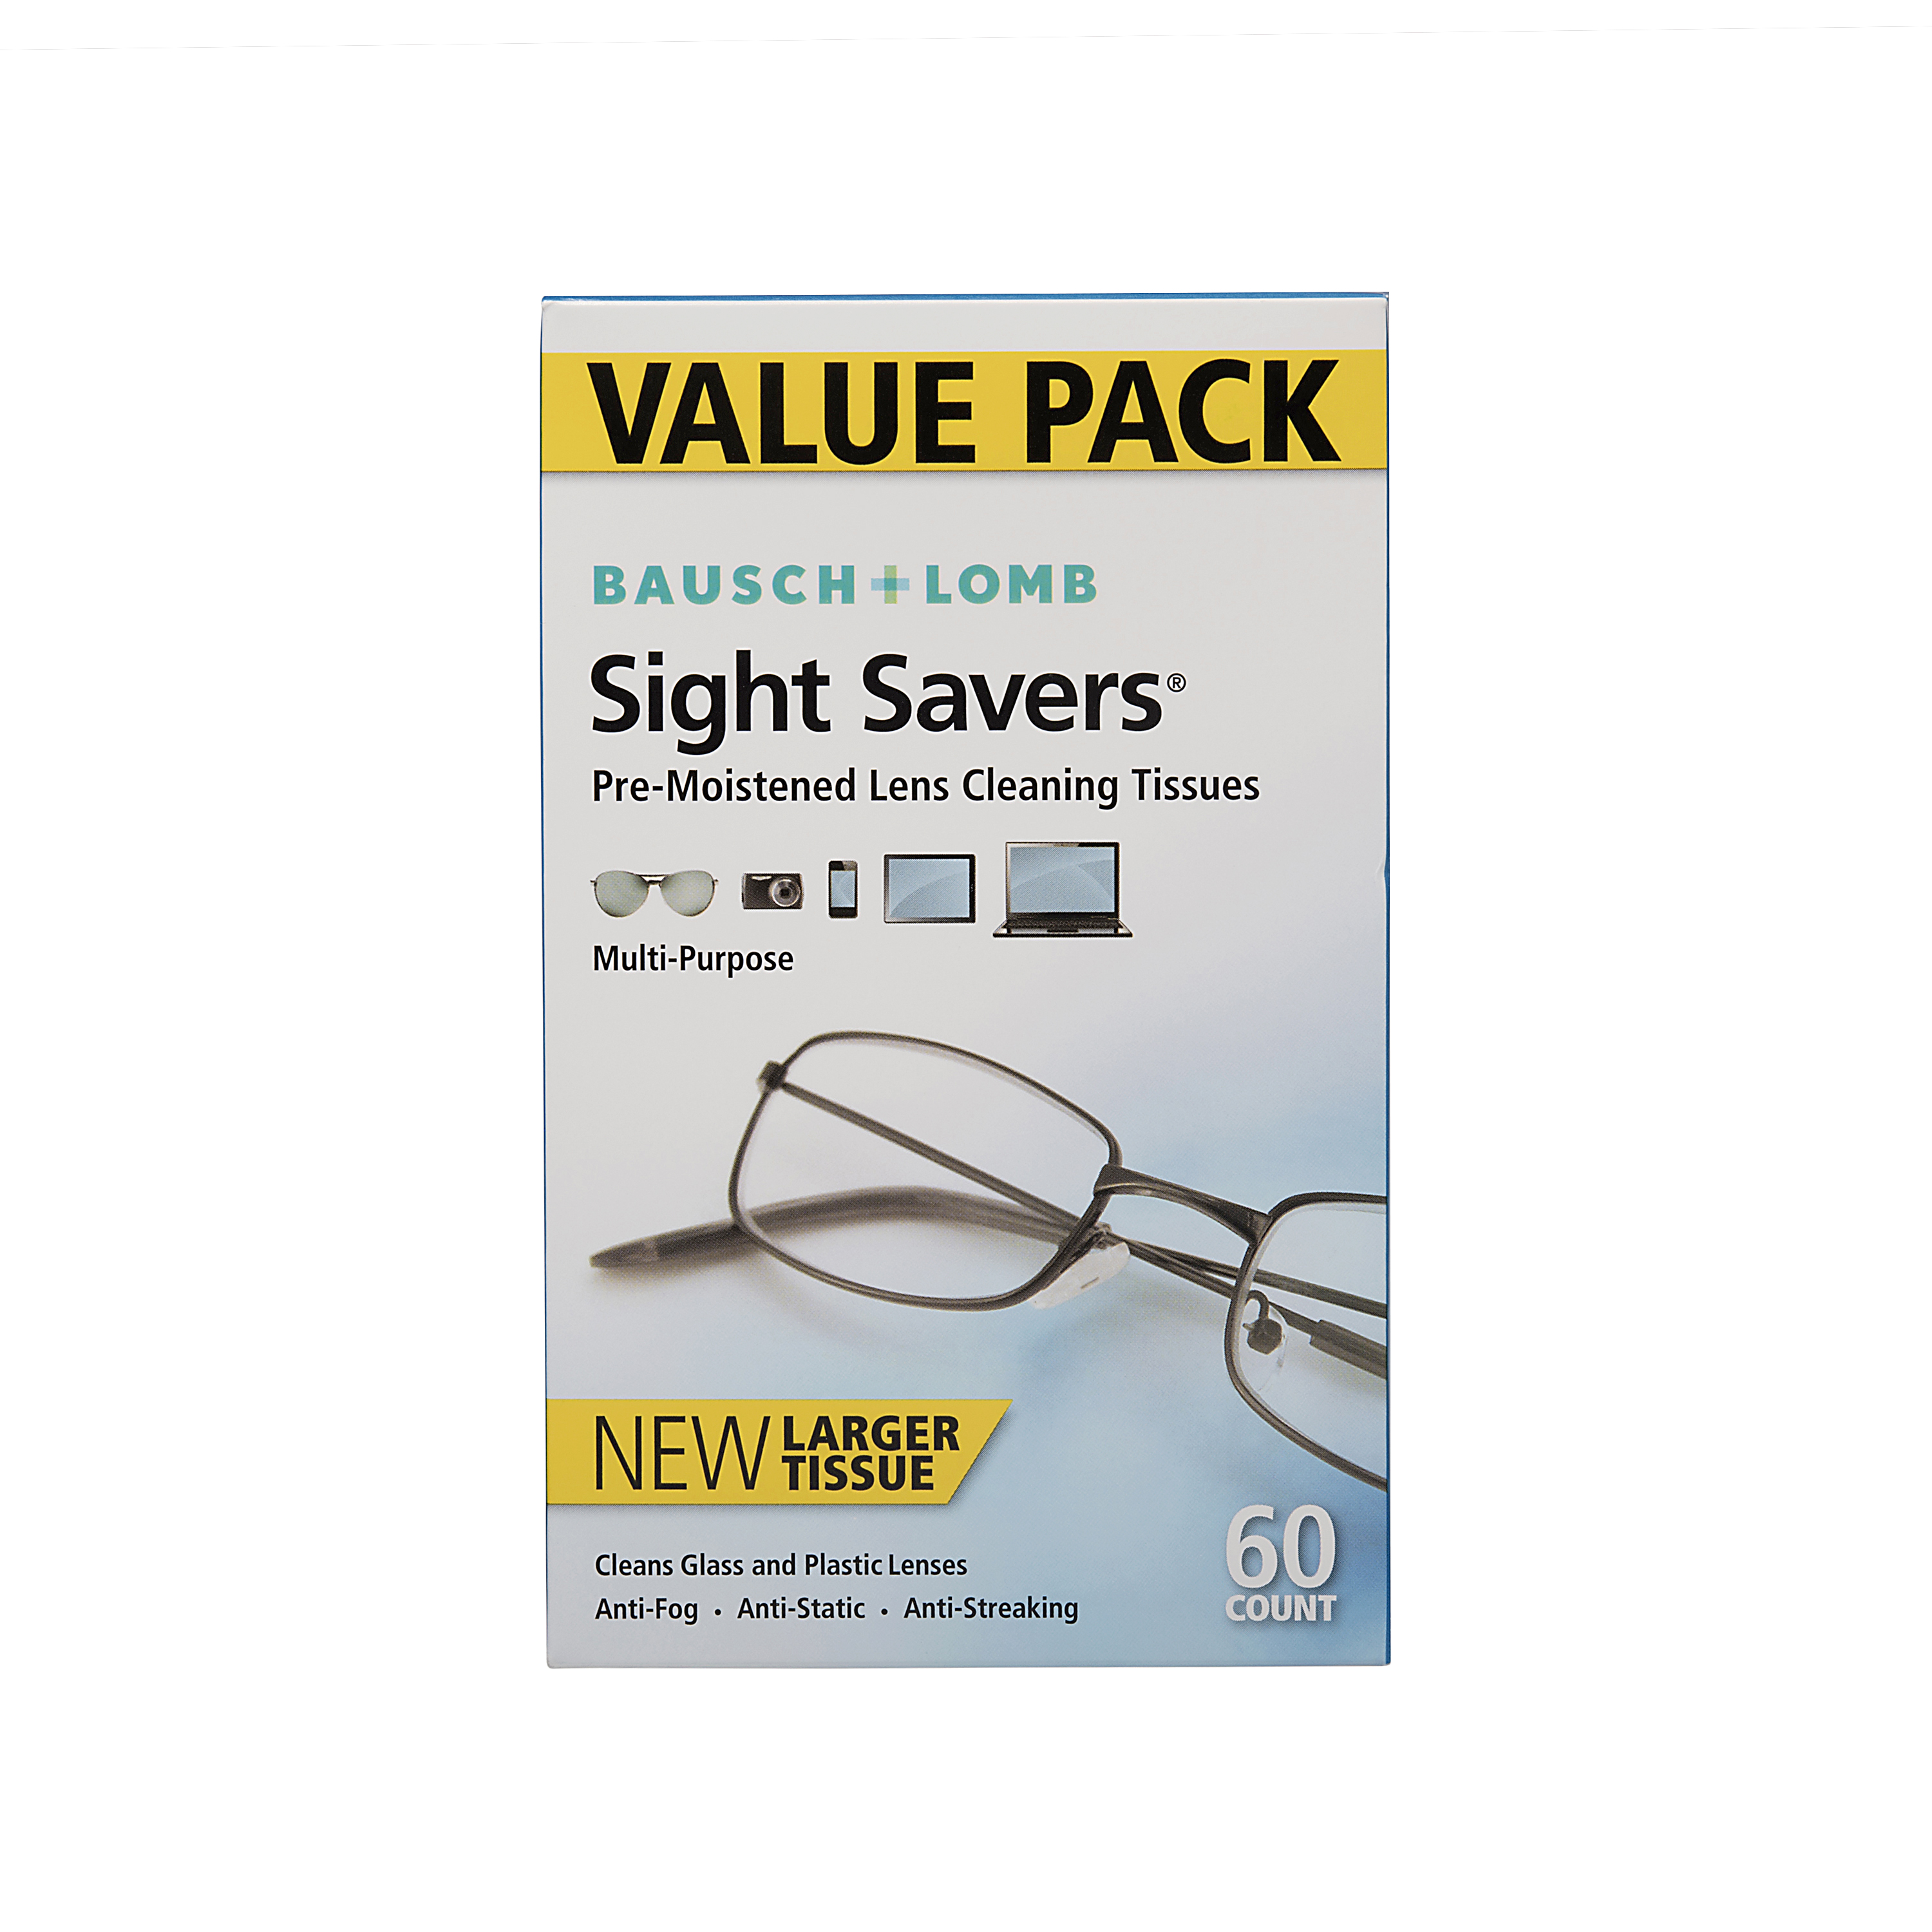 Bausch & Lomb Sight Savers Pre-Moistened Lens Cleaning Tissues, 60 sheets